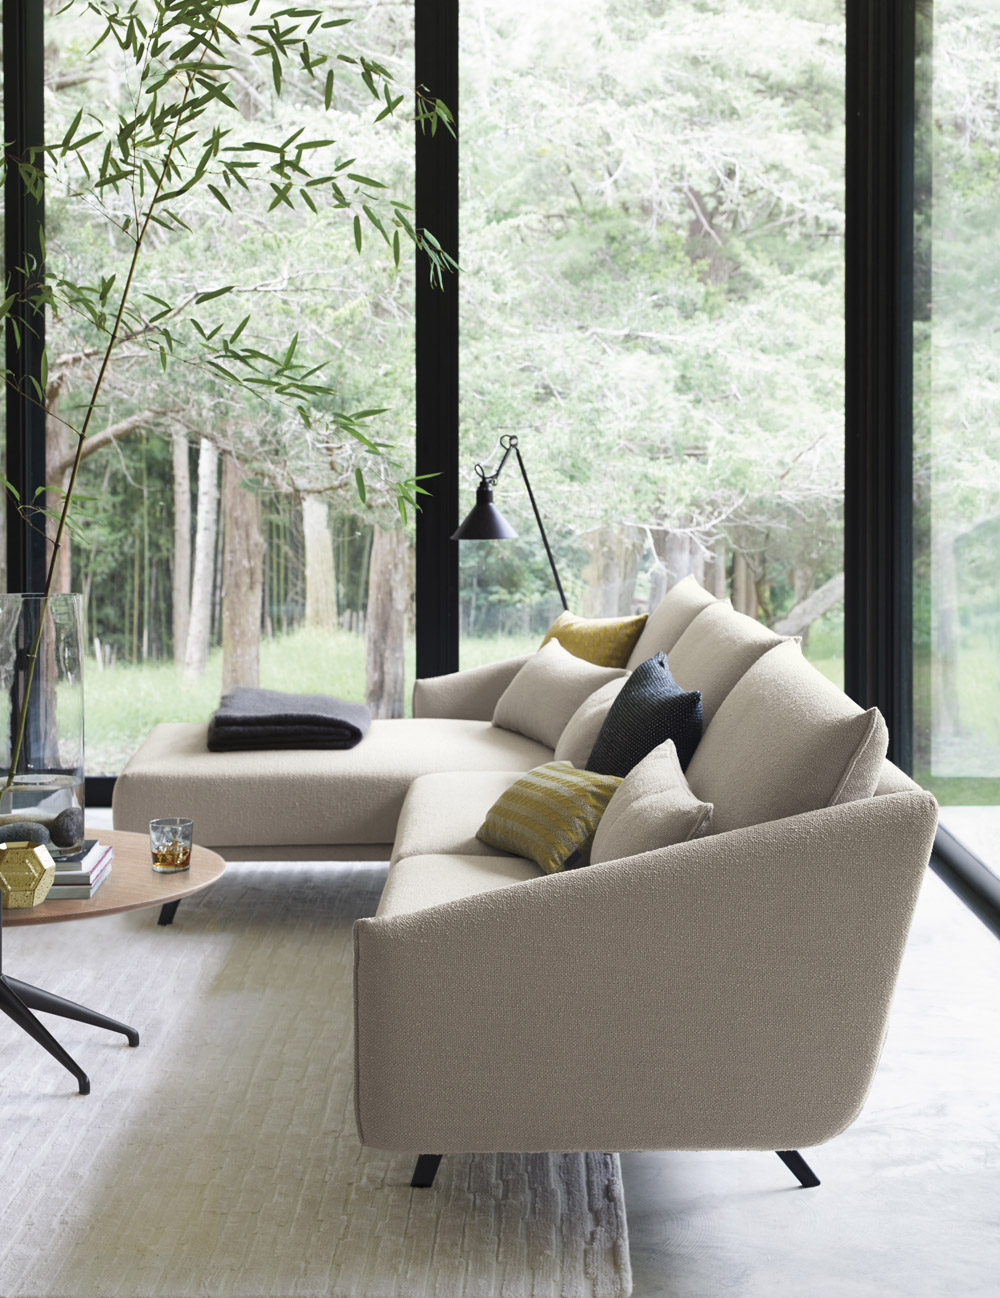 Remarkable Stua Costura Sofa Collection Gmtry Best Dining Table And Chair Ideas Images Gmtryco